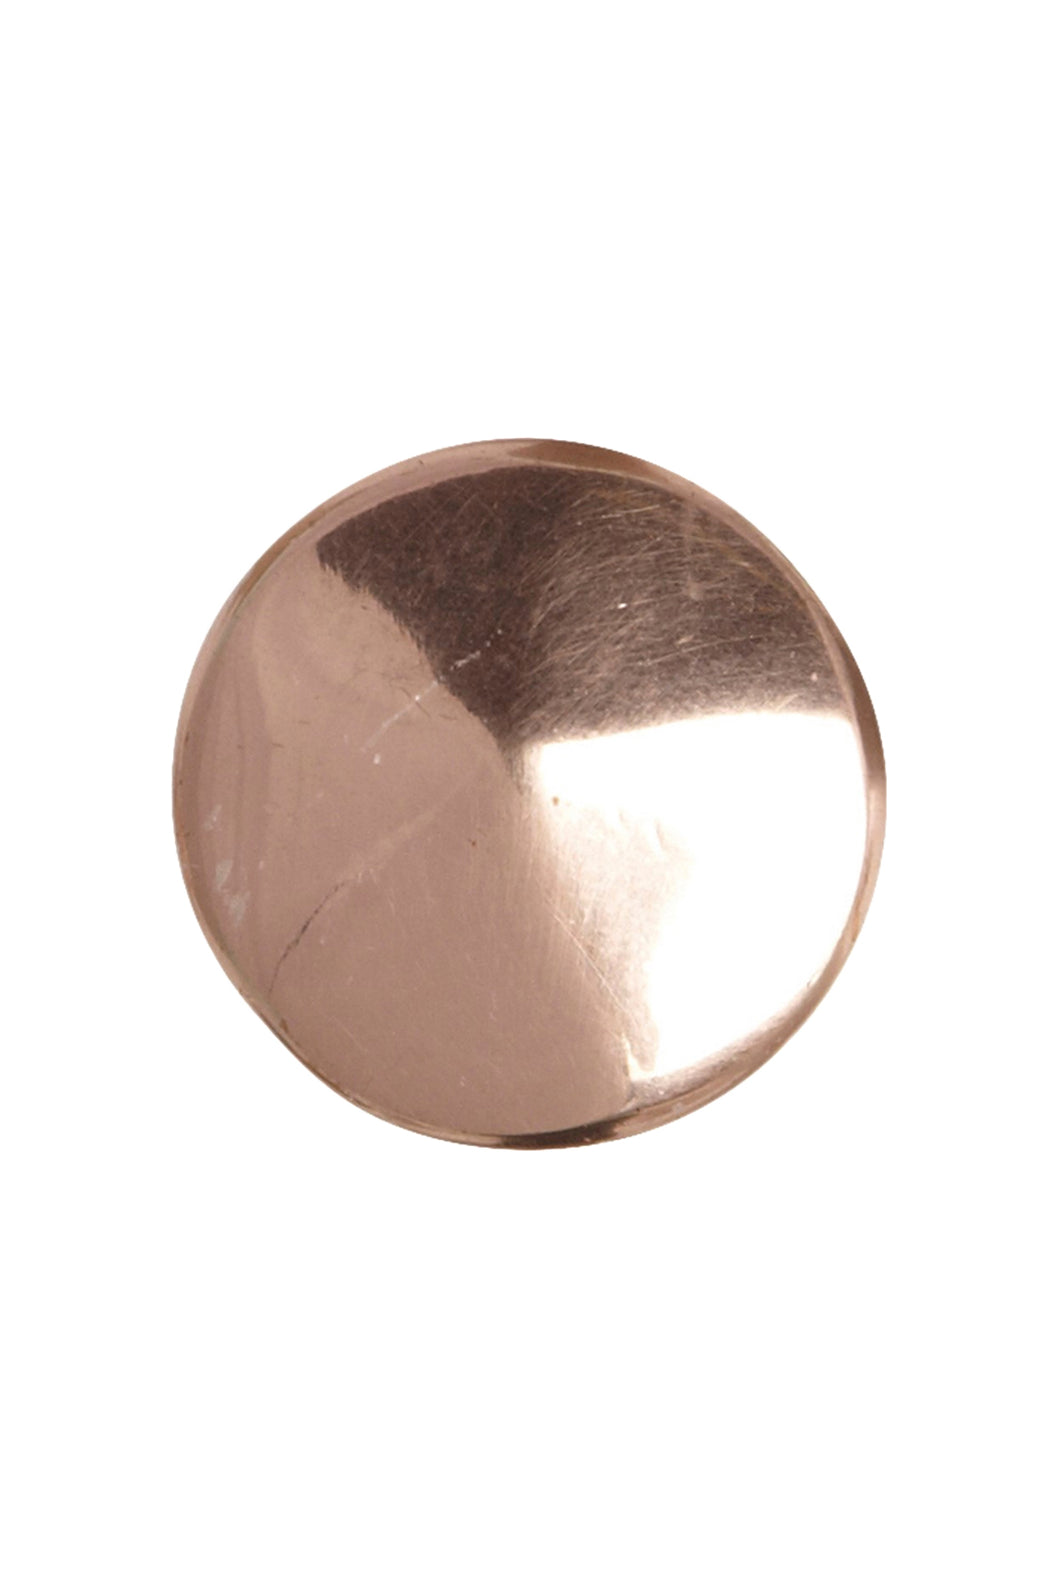 House Doctor - Nail Knob - Copper Plated